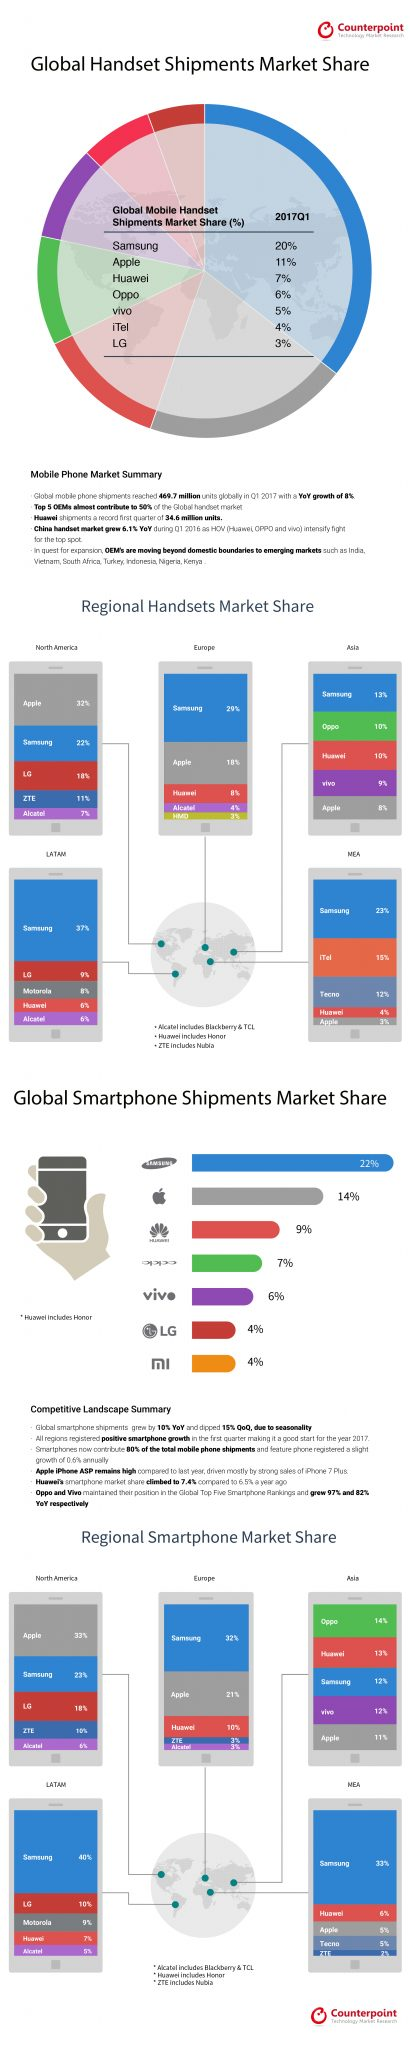 infographic-global-handset-share-2017